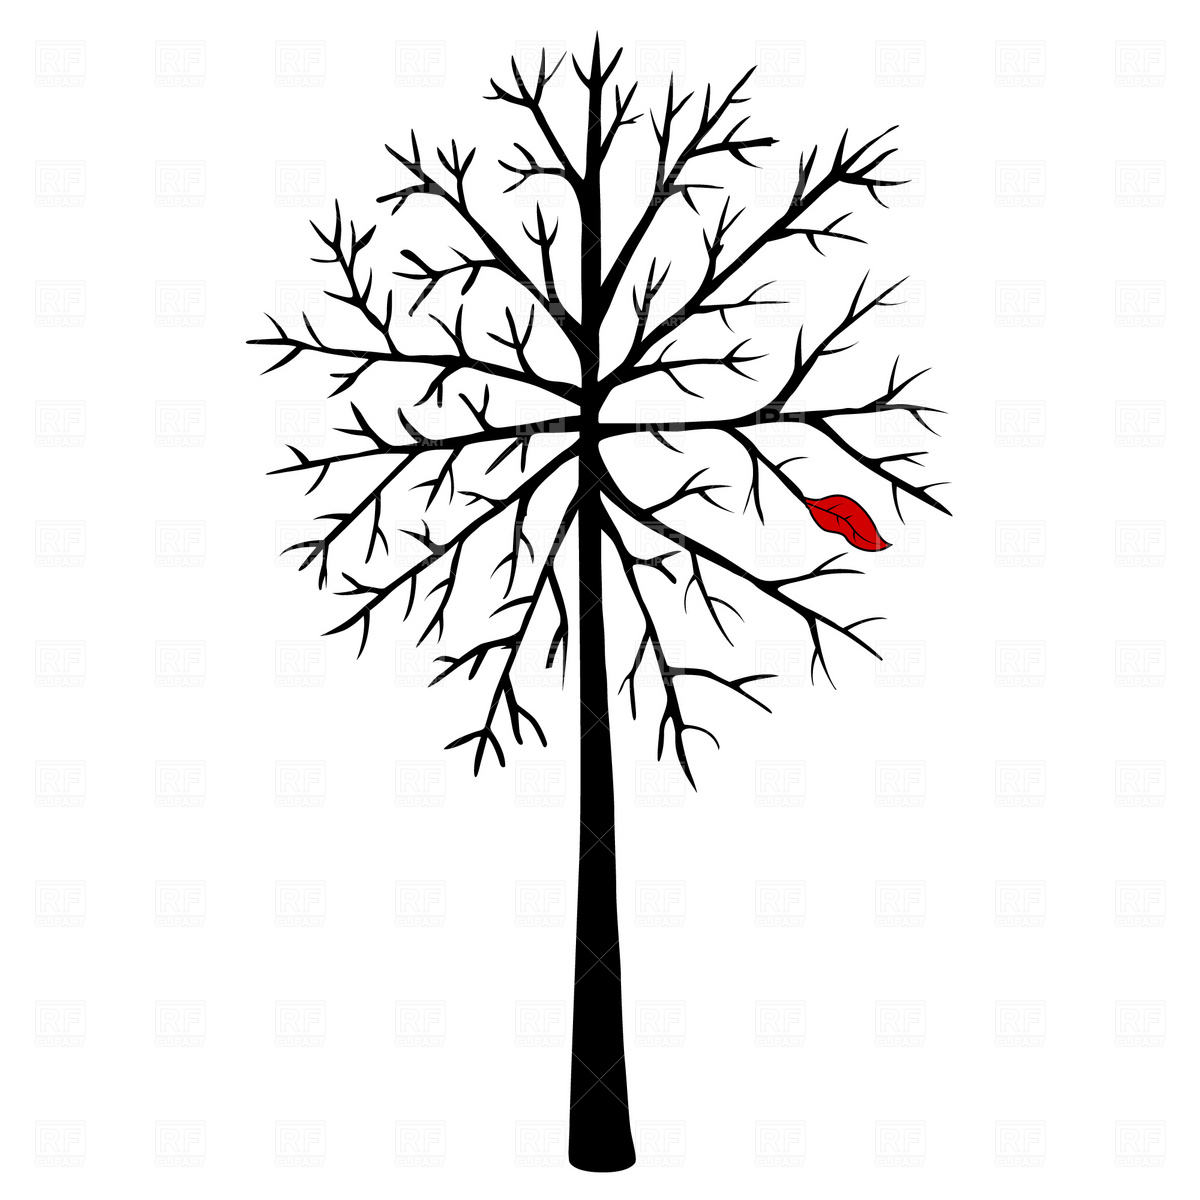 1200x1200 Clipart Bare Tree Branches